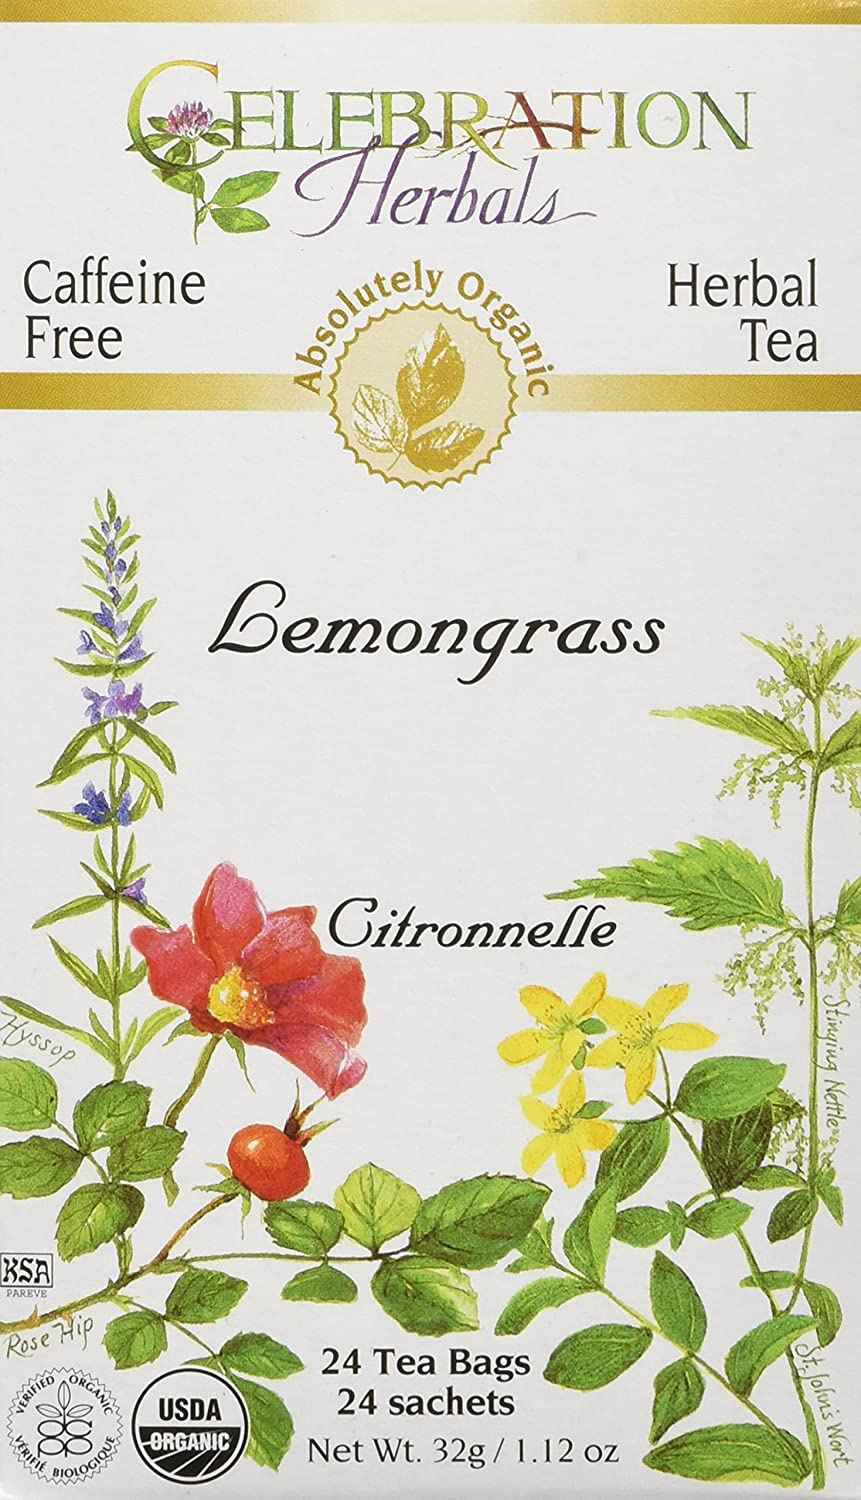 CELEBRATION HERBALS Lemongrass Tea Organic 24 Bag